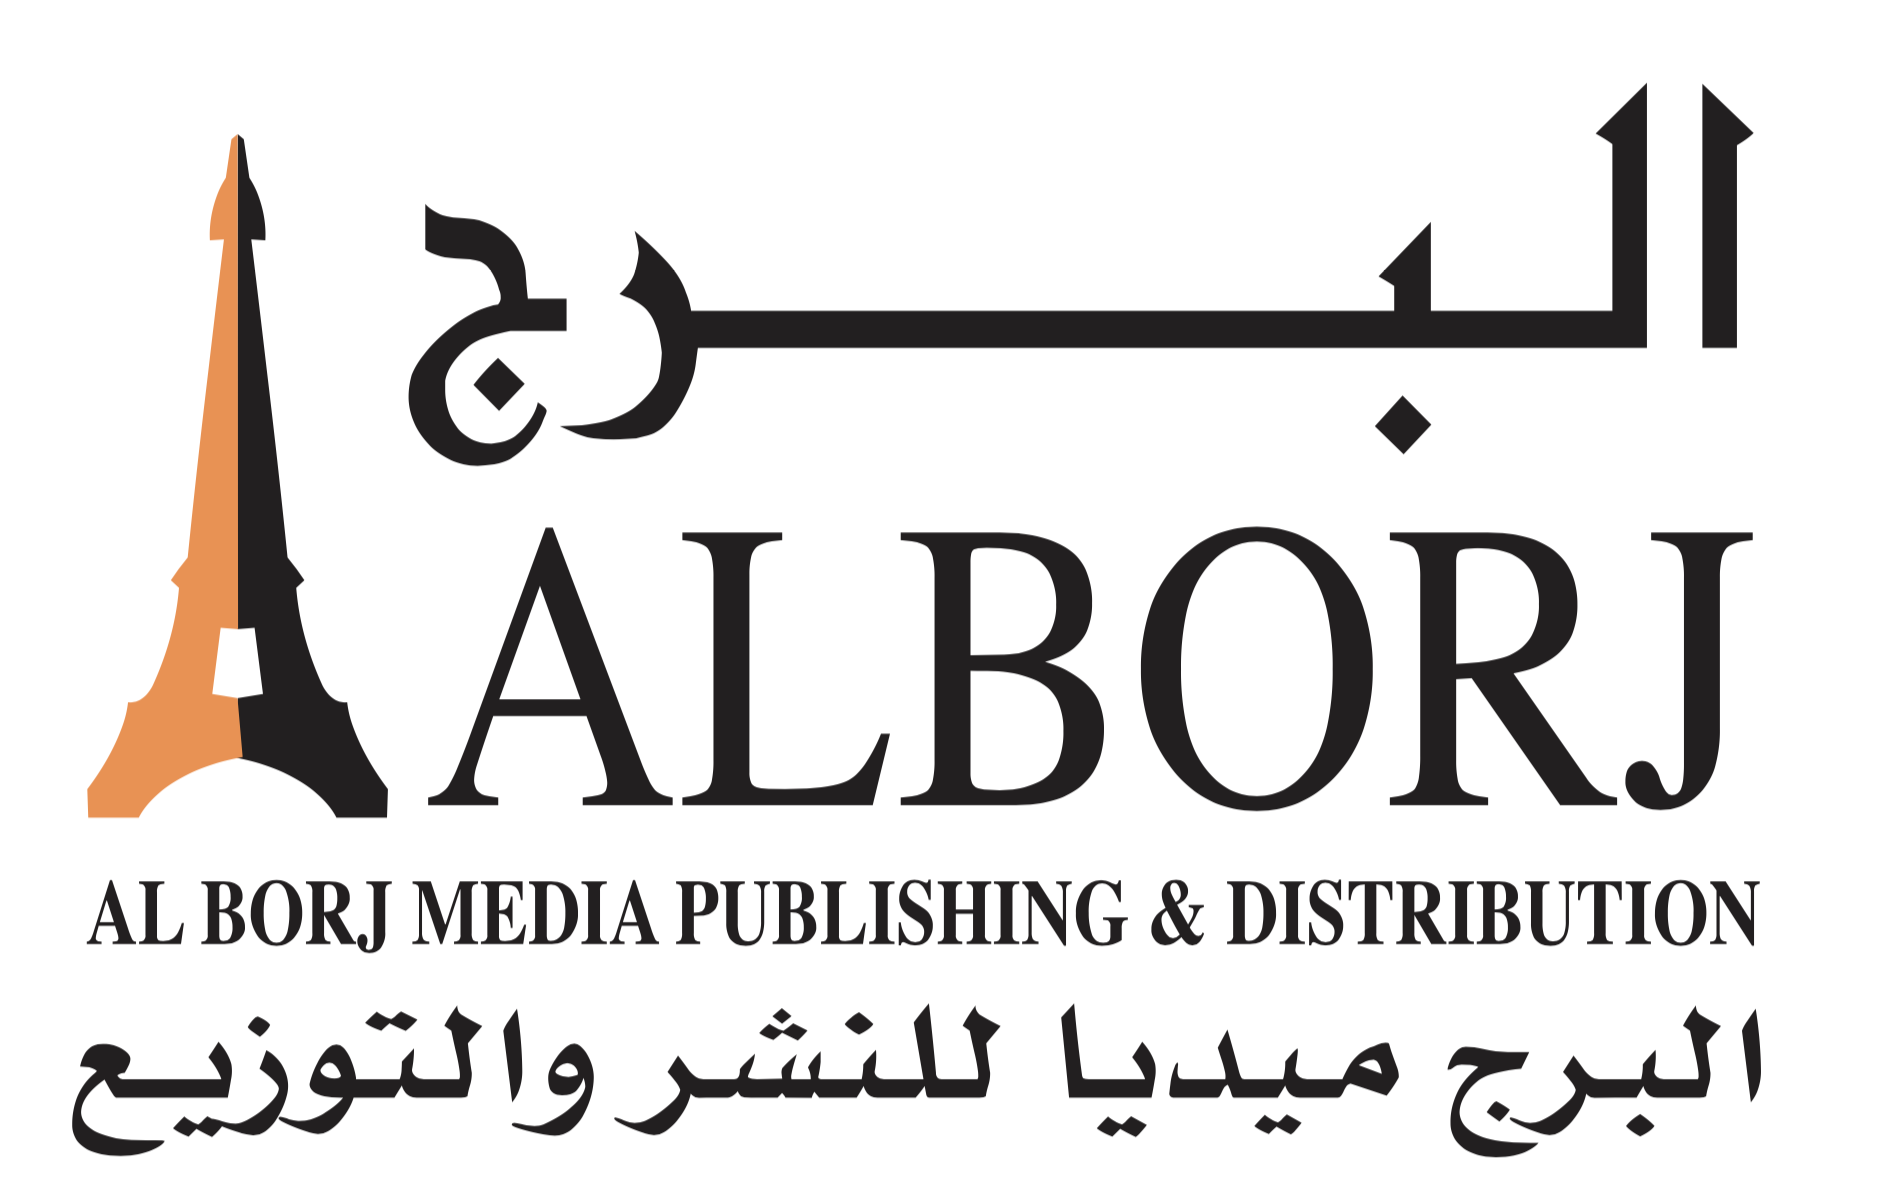 AlBorj Media Publishing & Distribution